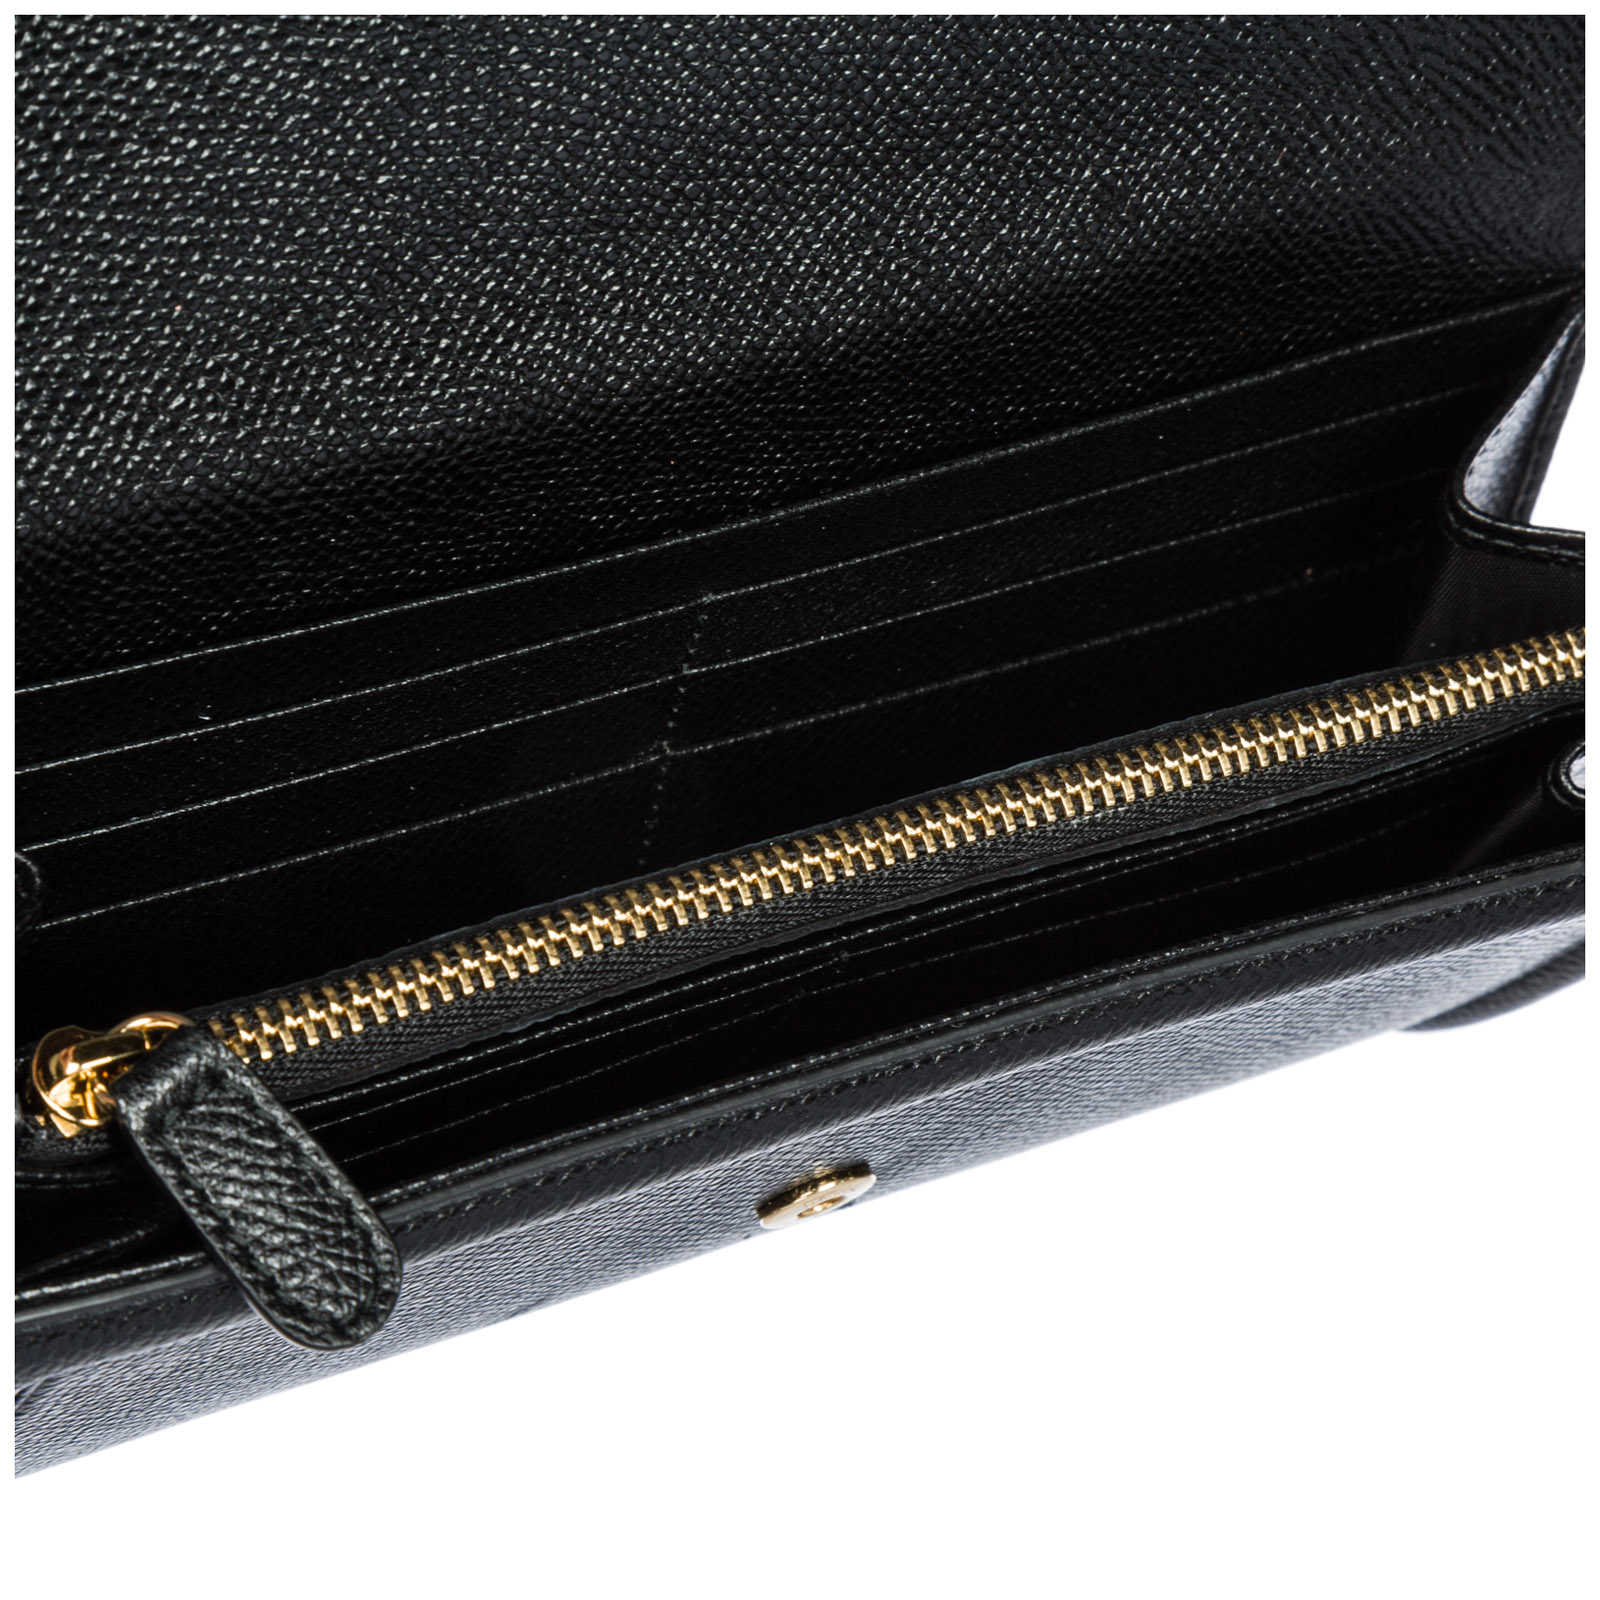 ... Women s wallet genuine leather coin case holder purse card bifold  continental bow vara ... 7970adfcdb442